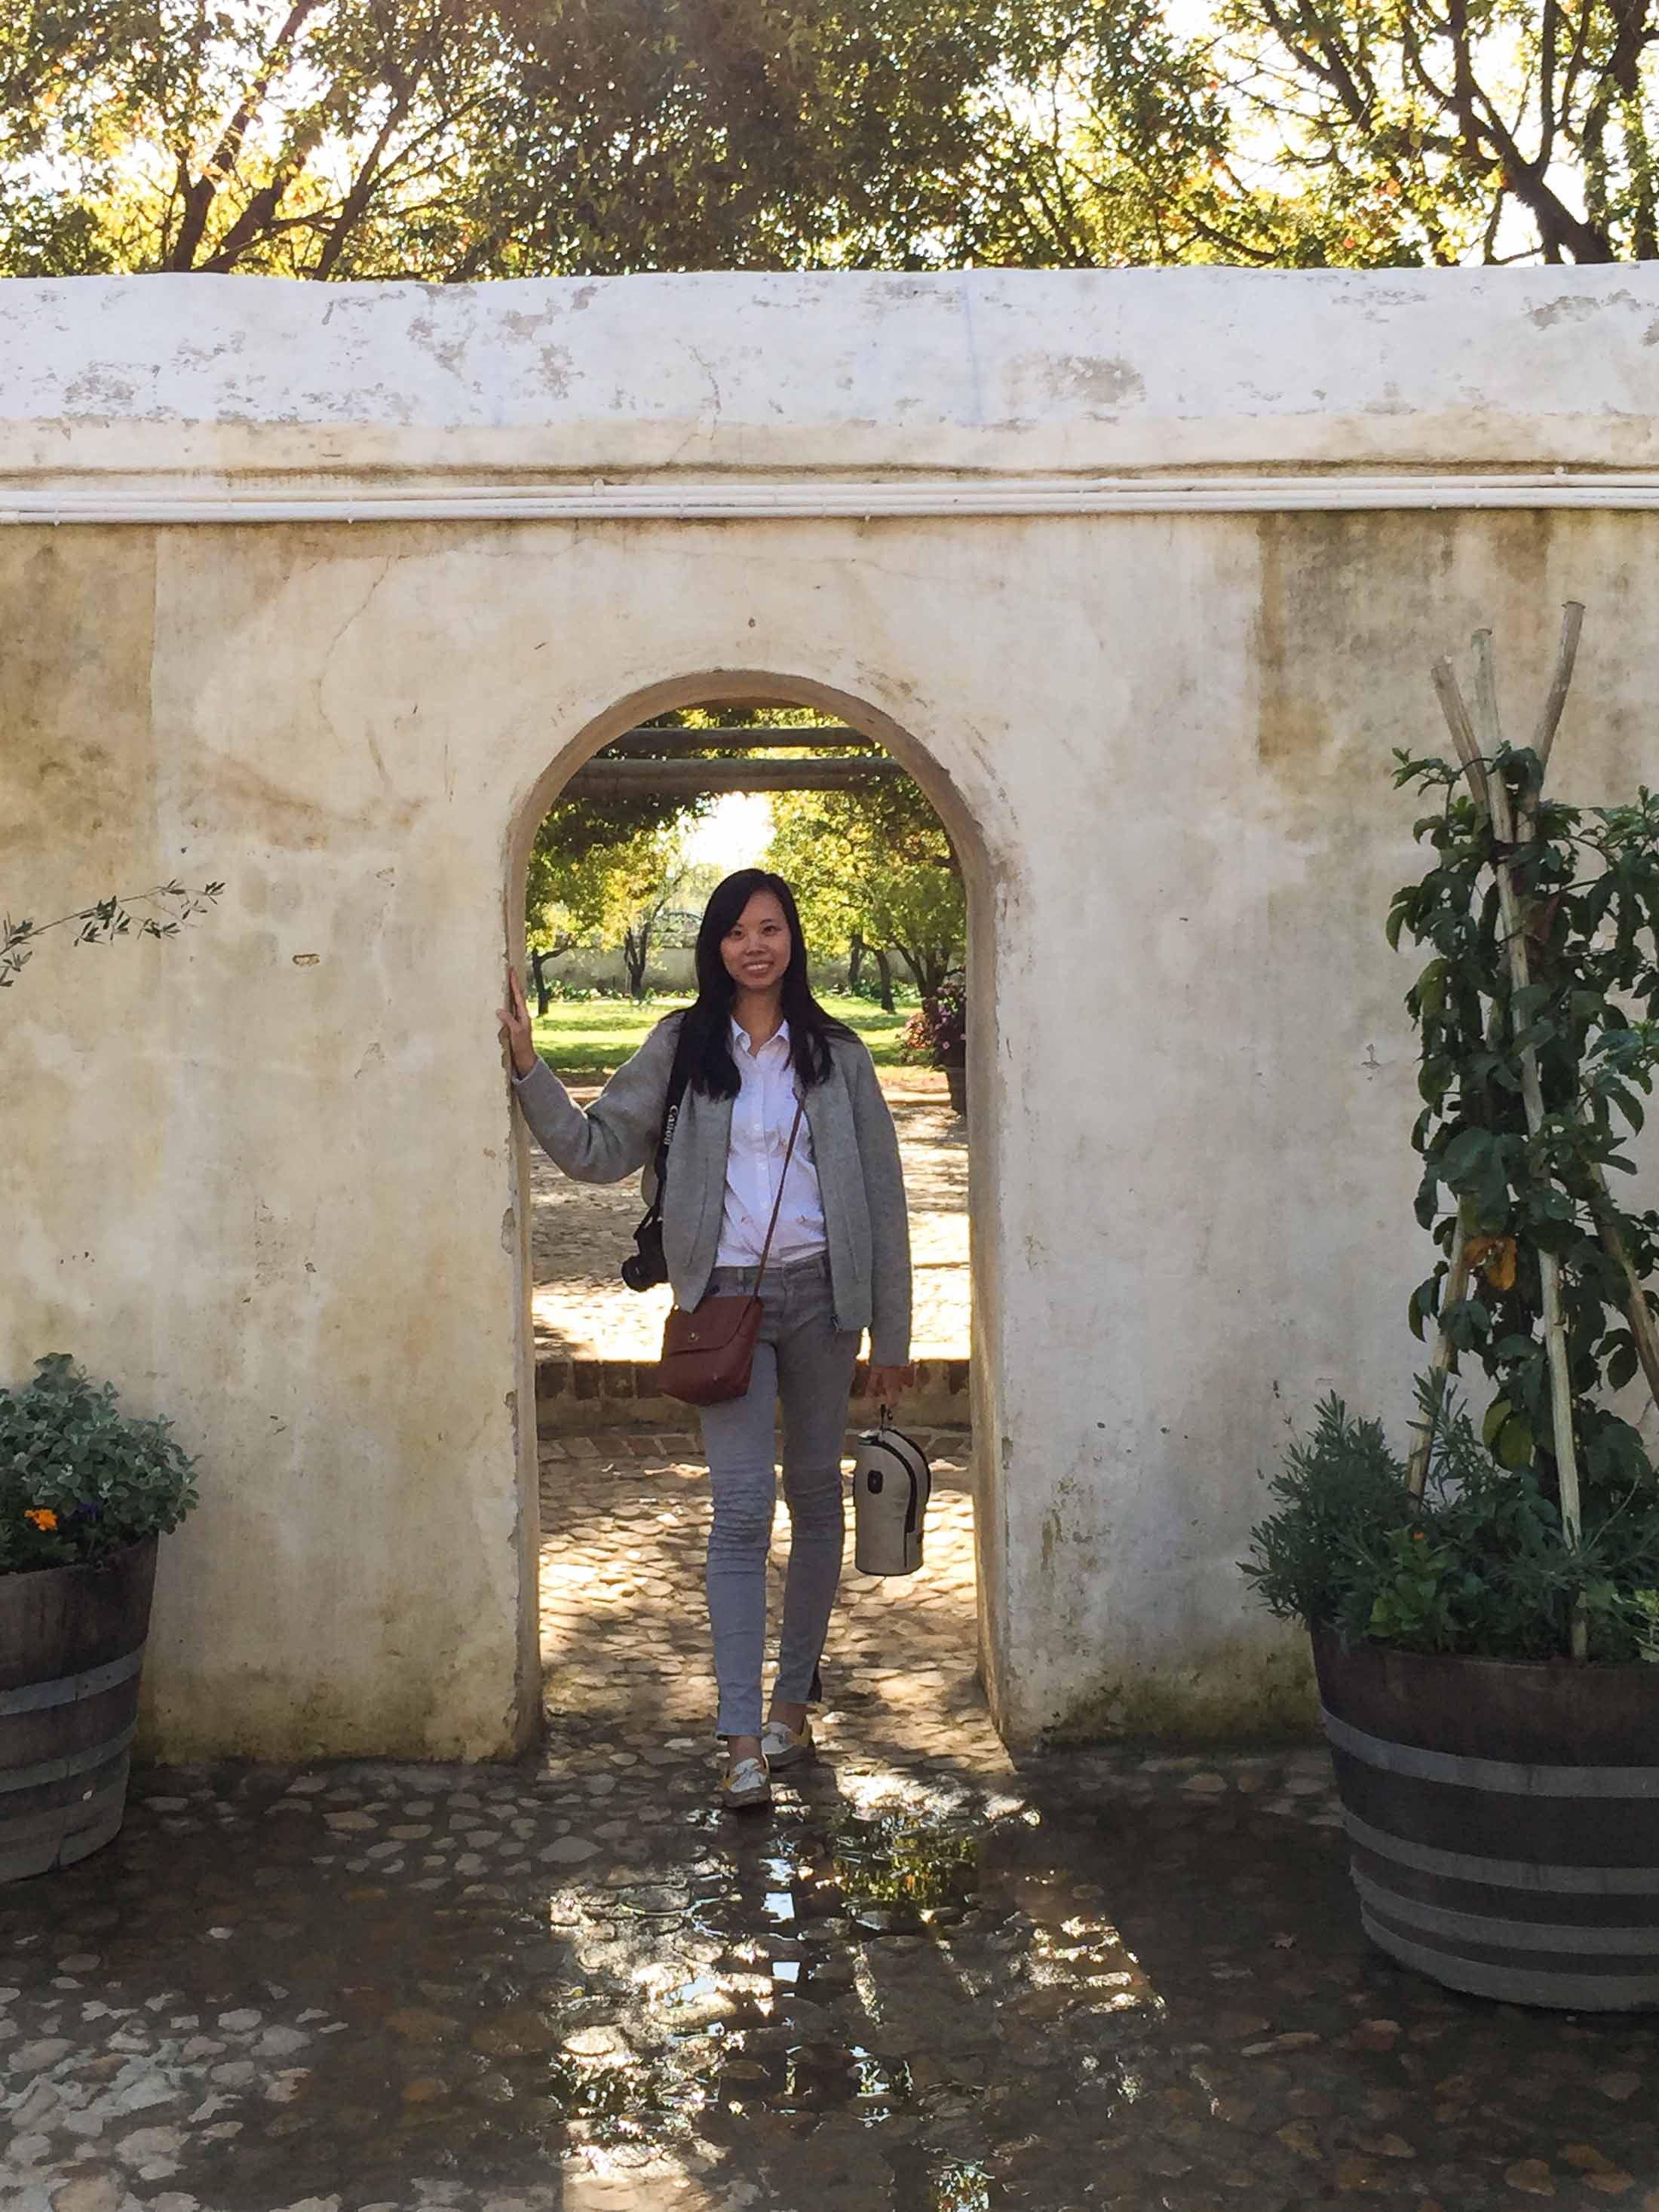 cape town travel guide wine tasting cape town winelands travel blog sher she goes shershegoes.com Boschendal Franschhoek Winery